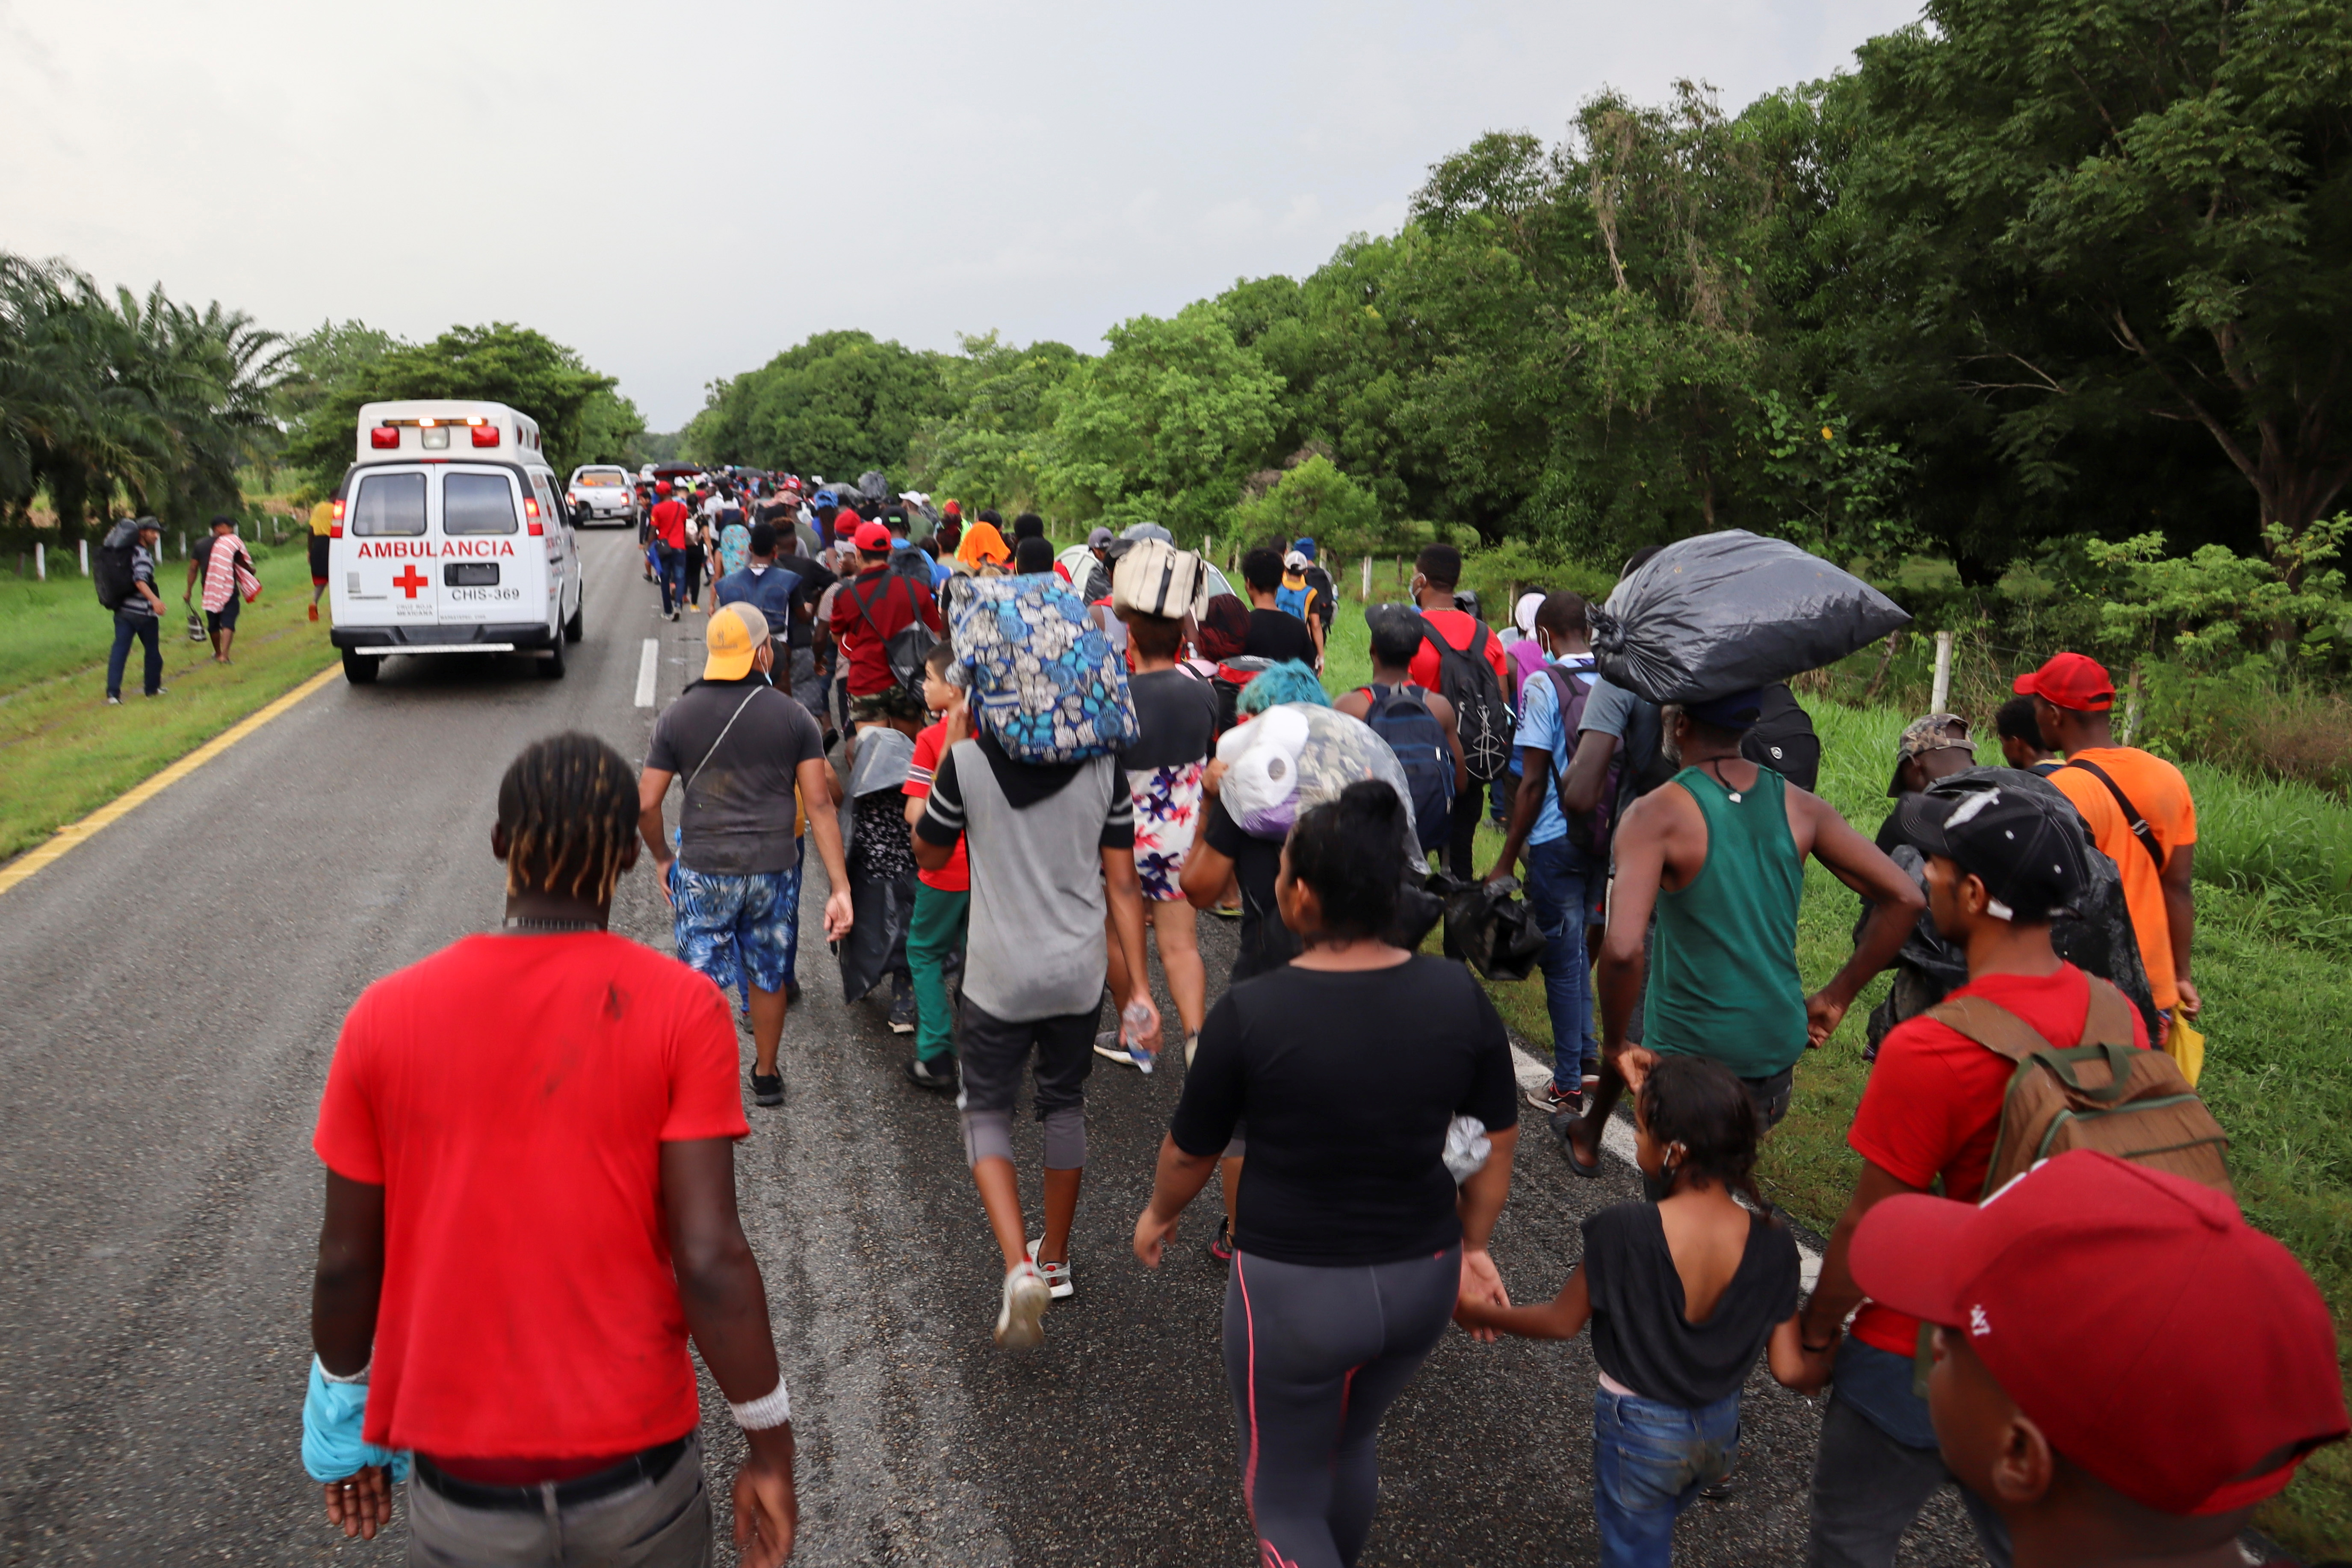 Migrants and asylum seekers from Central America and the Caribbean walk in a caravan headed to the Mexican capital to apply for asylum and refugee status, on a highway near Escuintla, in Chiapas state, Mexico August 29, 2021. REUTERS/Jose Torres